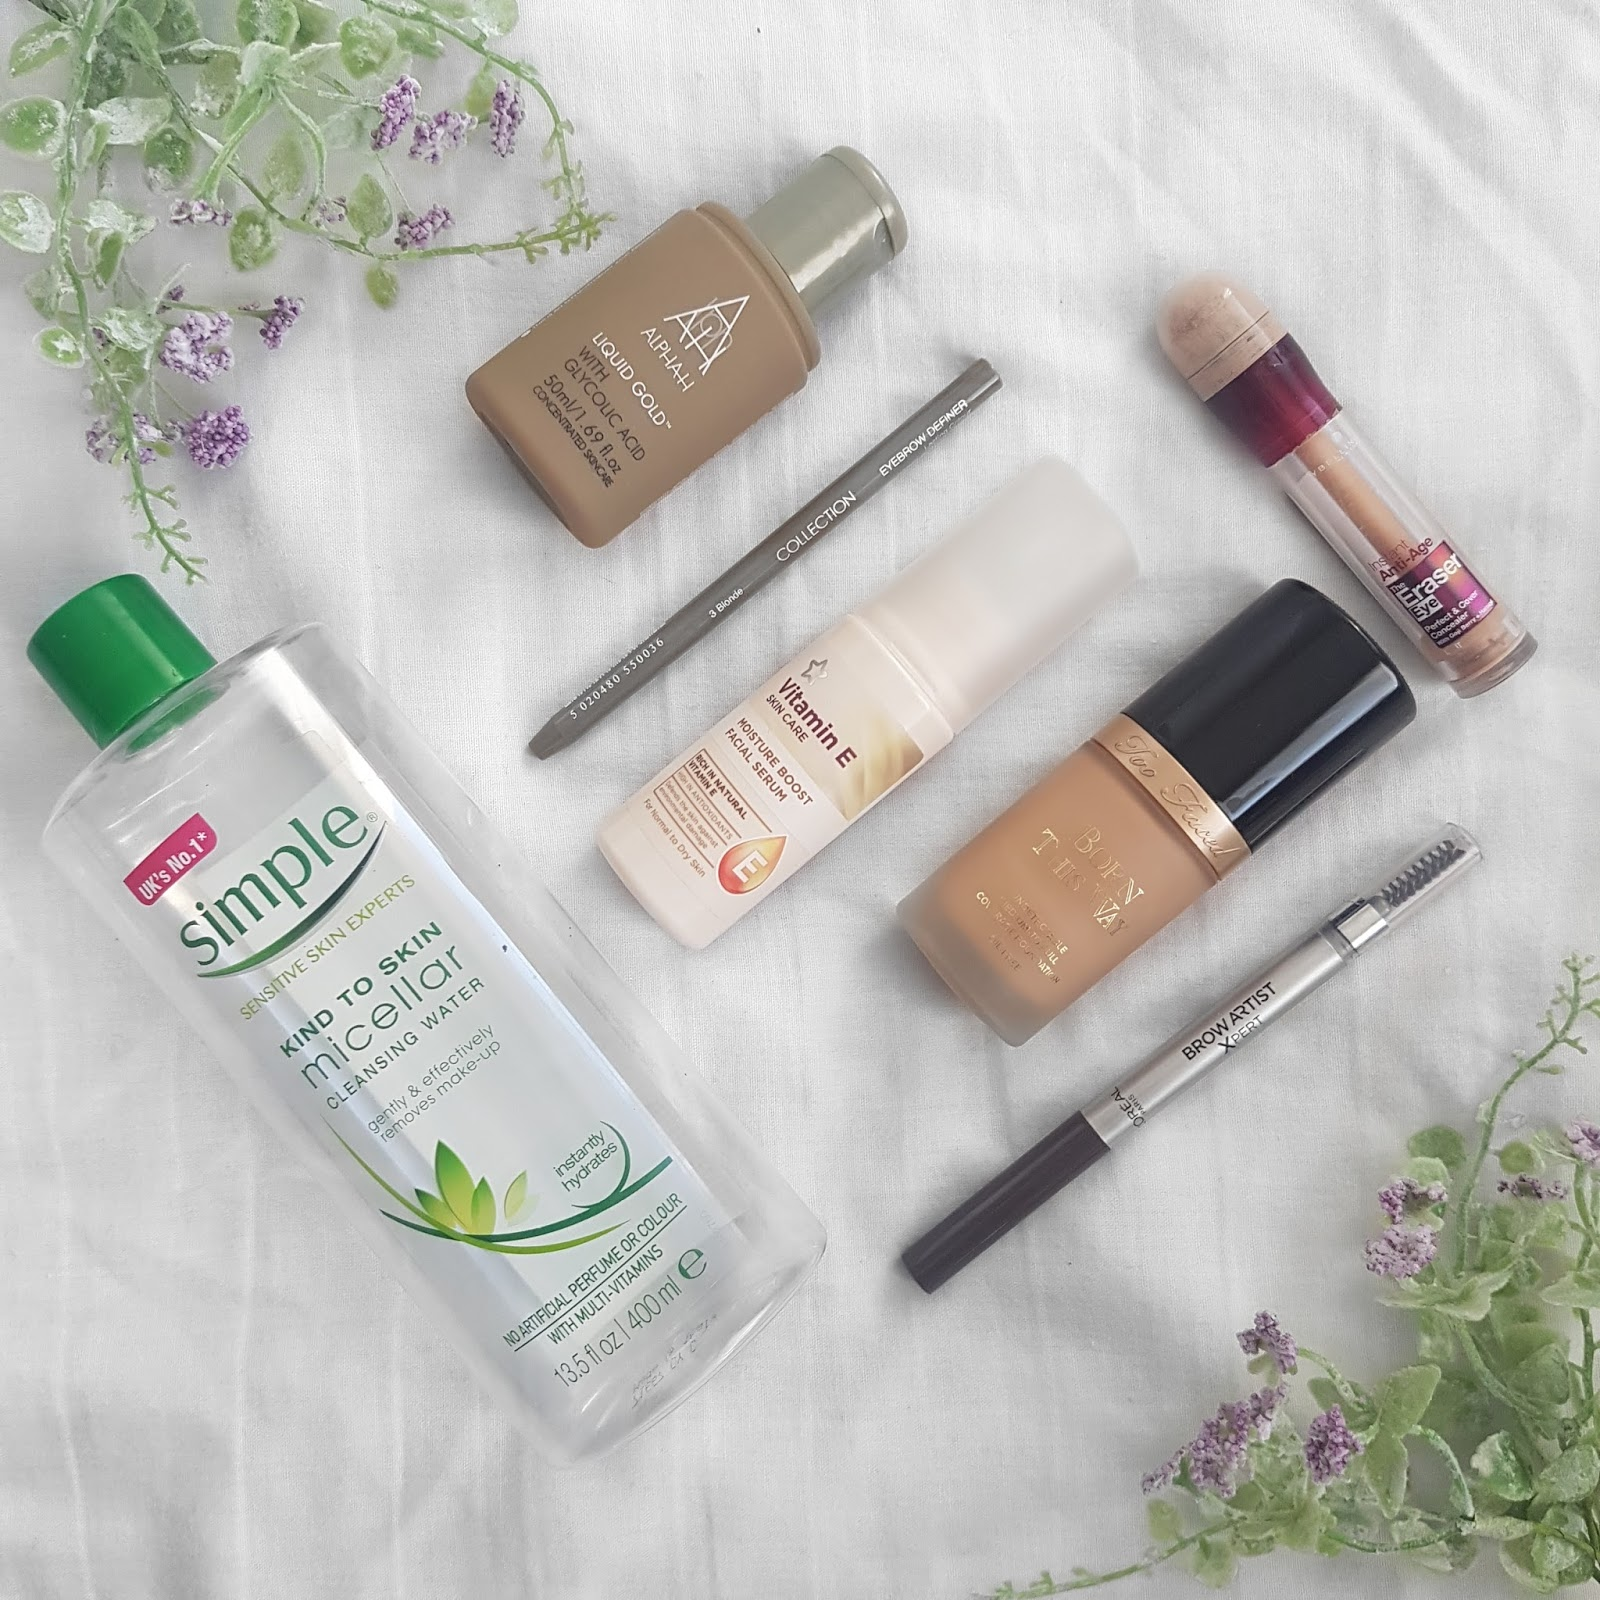 Empty Skincare and Makeup Products